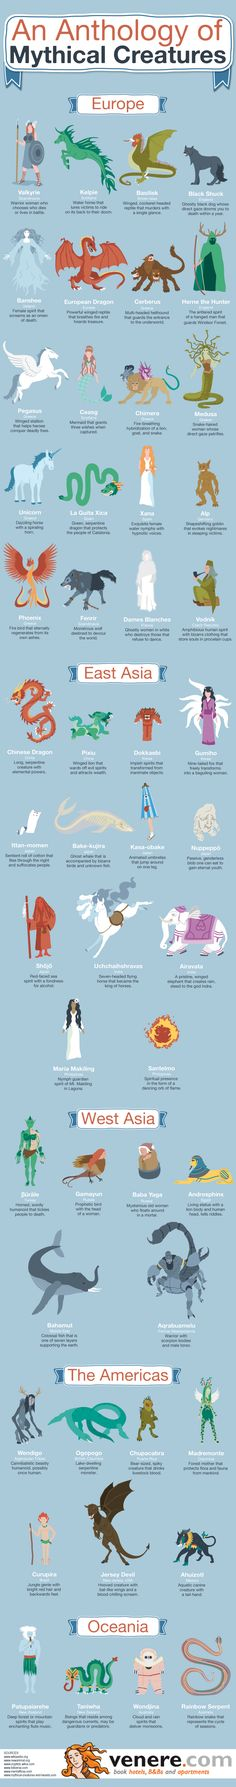 An Anthology of Mythical Creatures #infographic